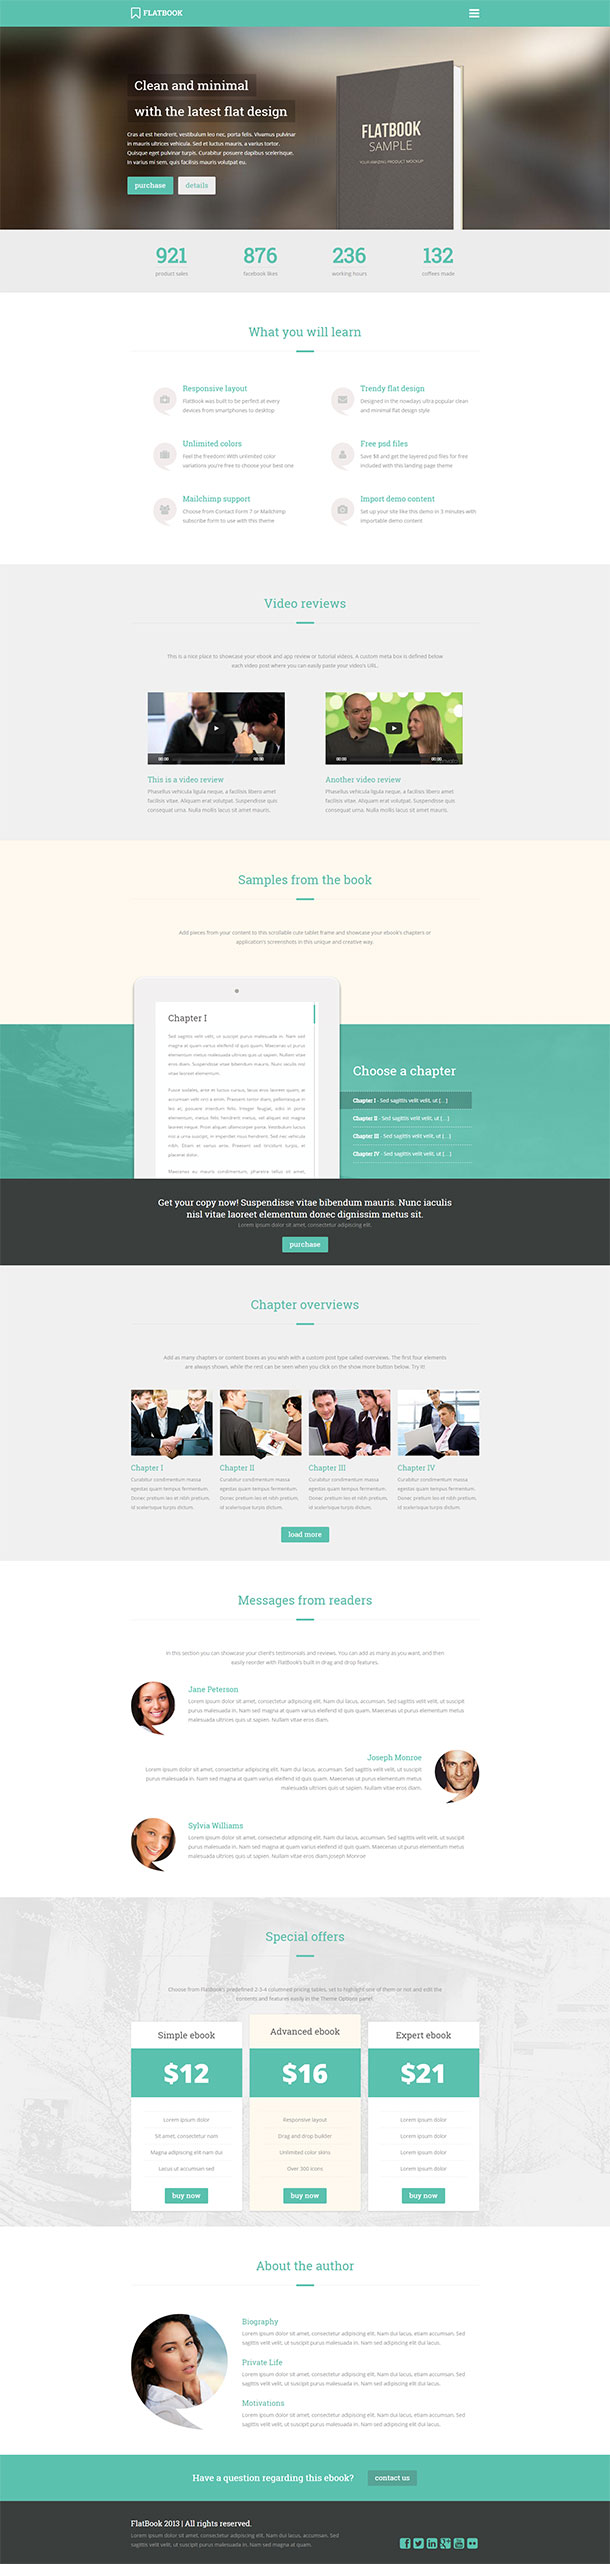 Flatbook Landing Page Template